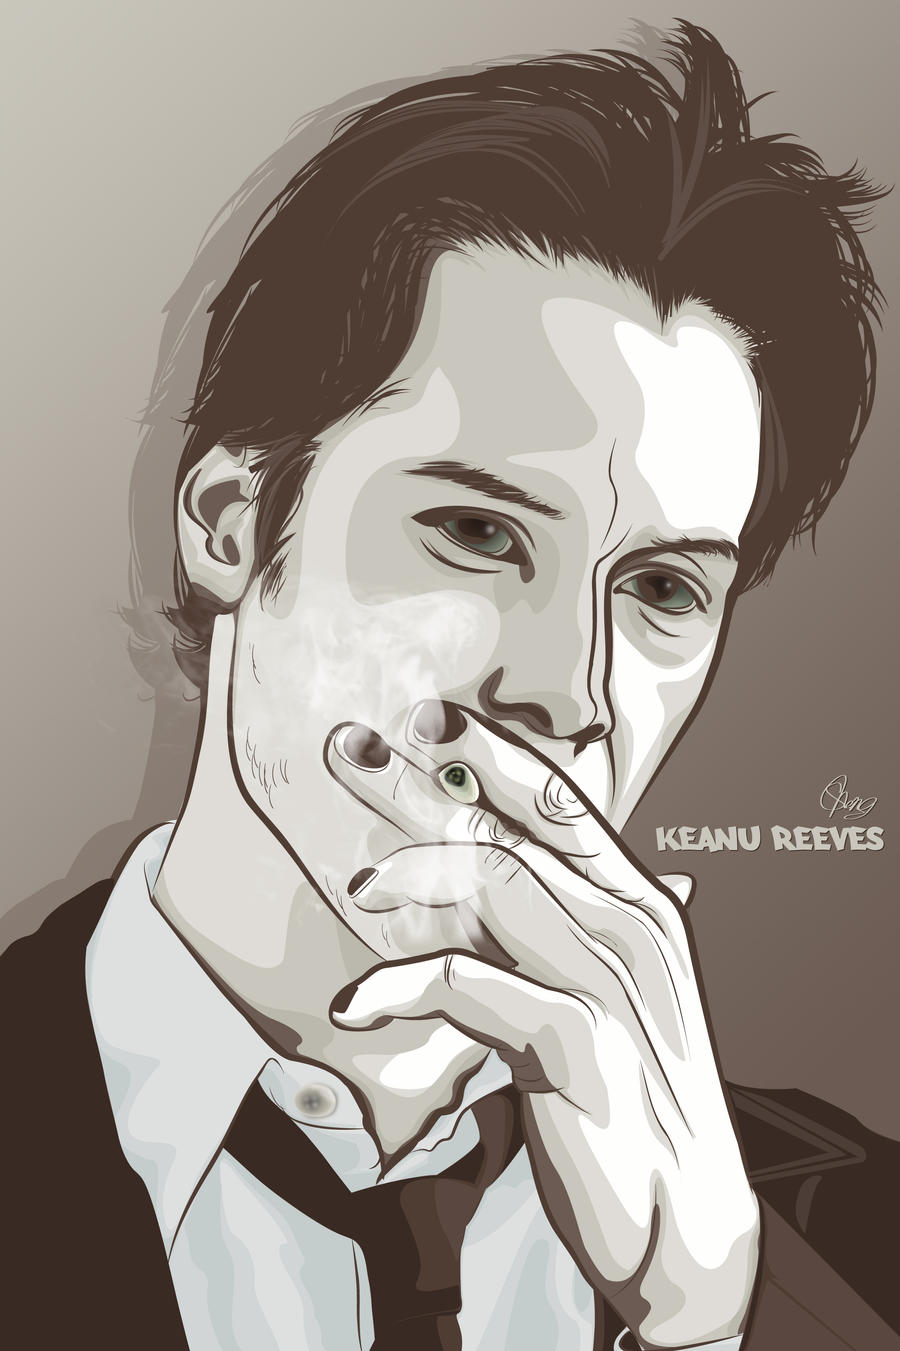 Keanu Reeves by shingudoo